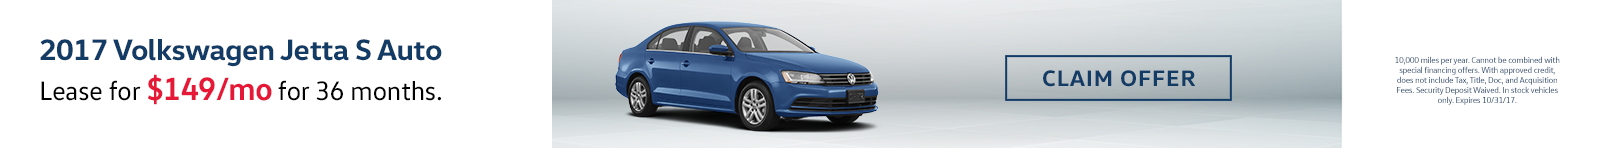 Jetta Lease Special